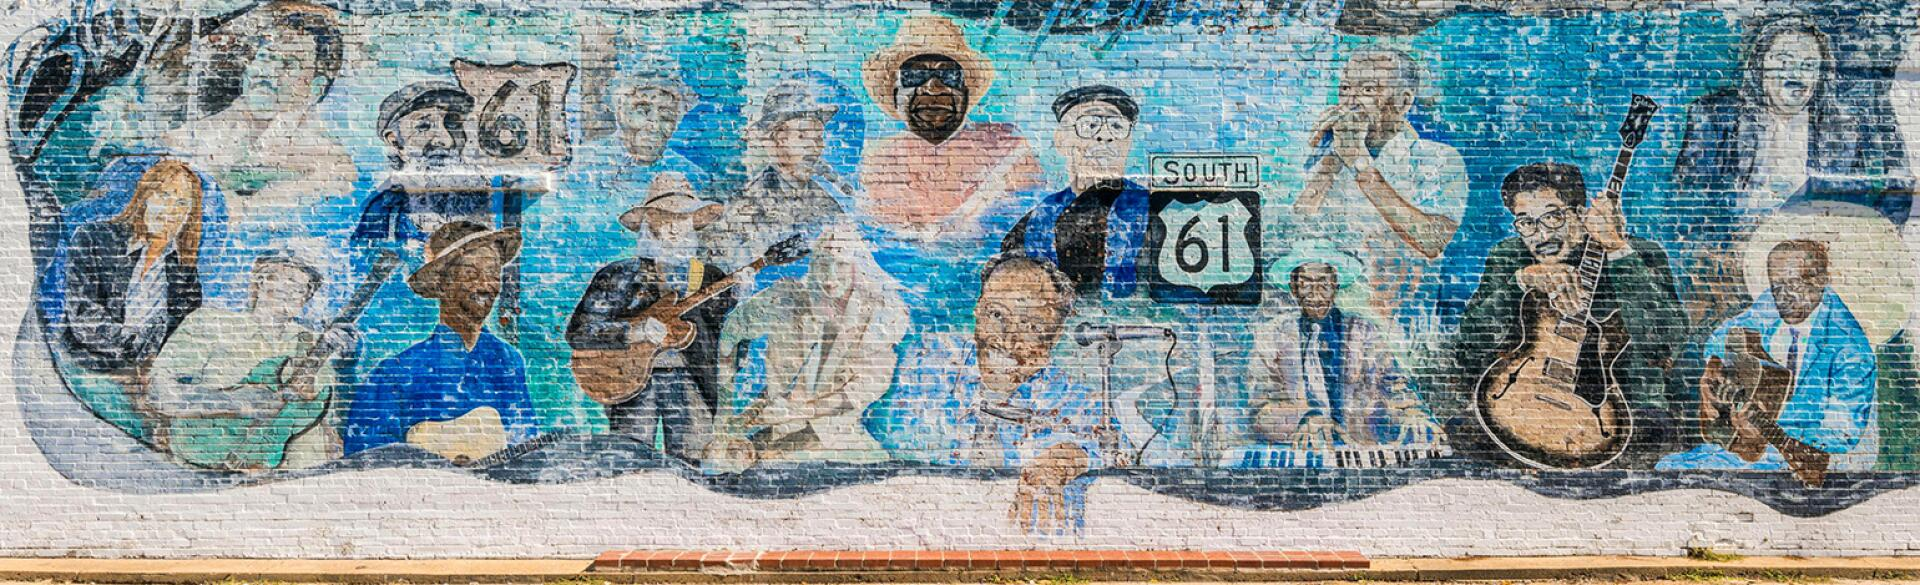 United States, Mississippi, Leland, mural about Highway 61, the Blues Highway,